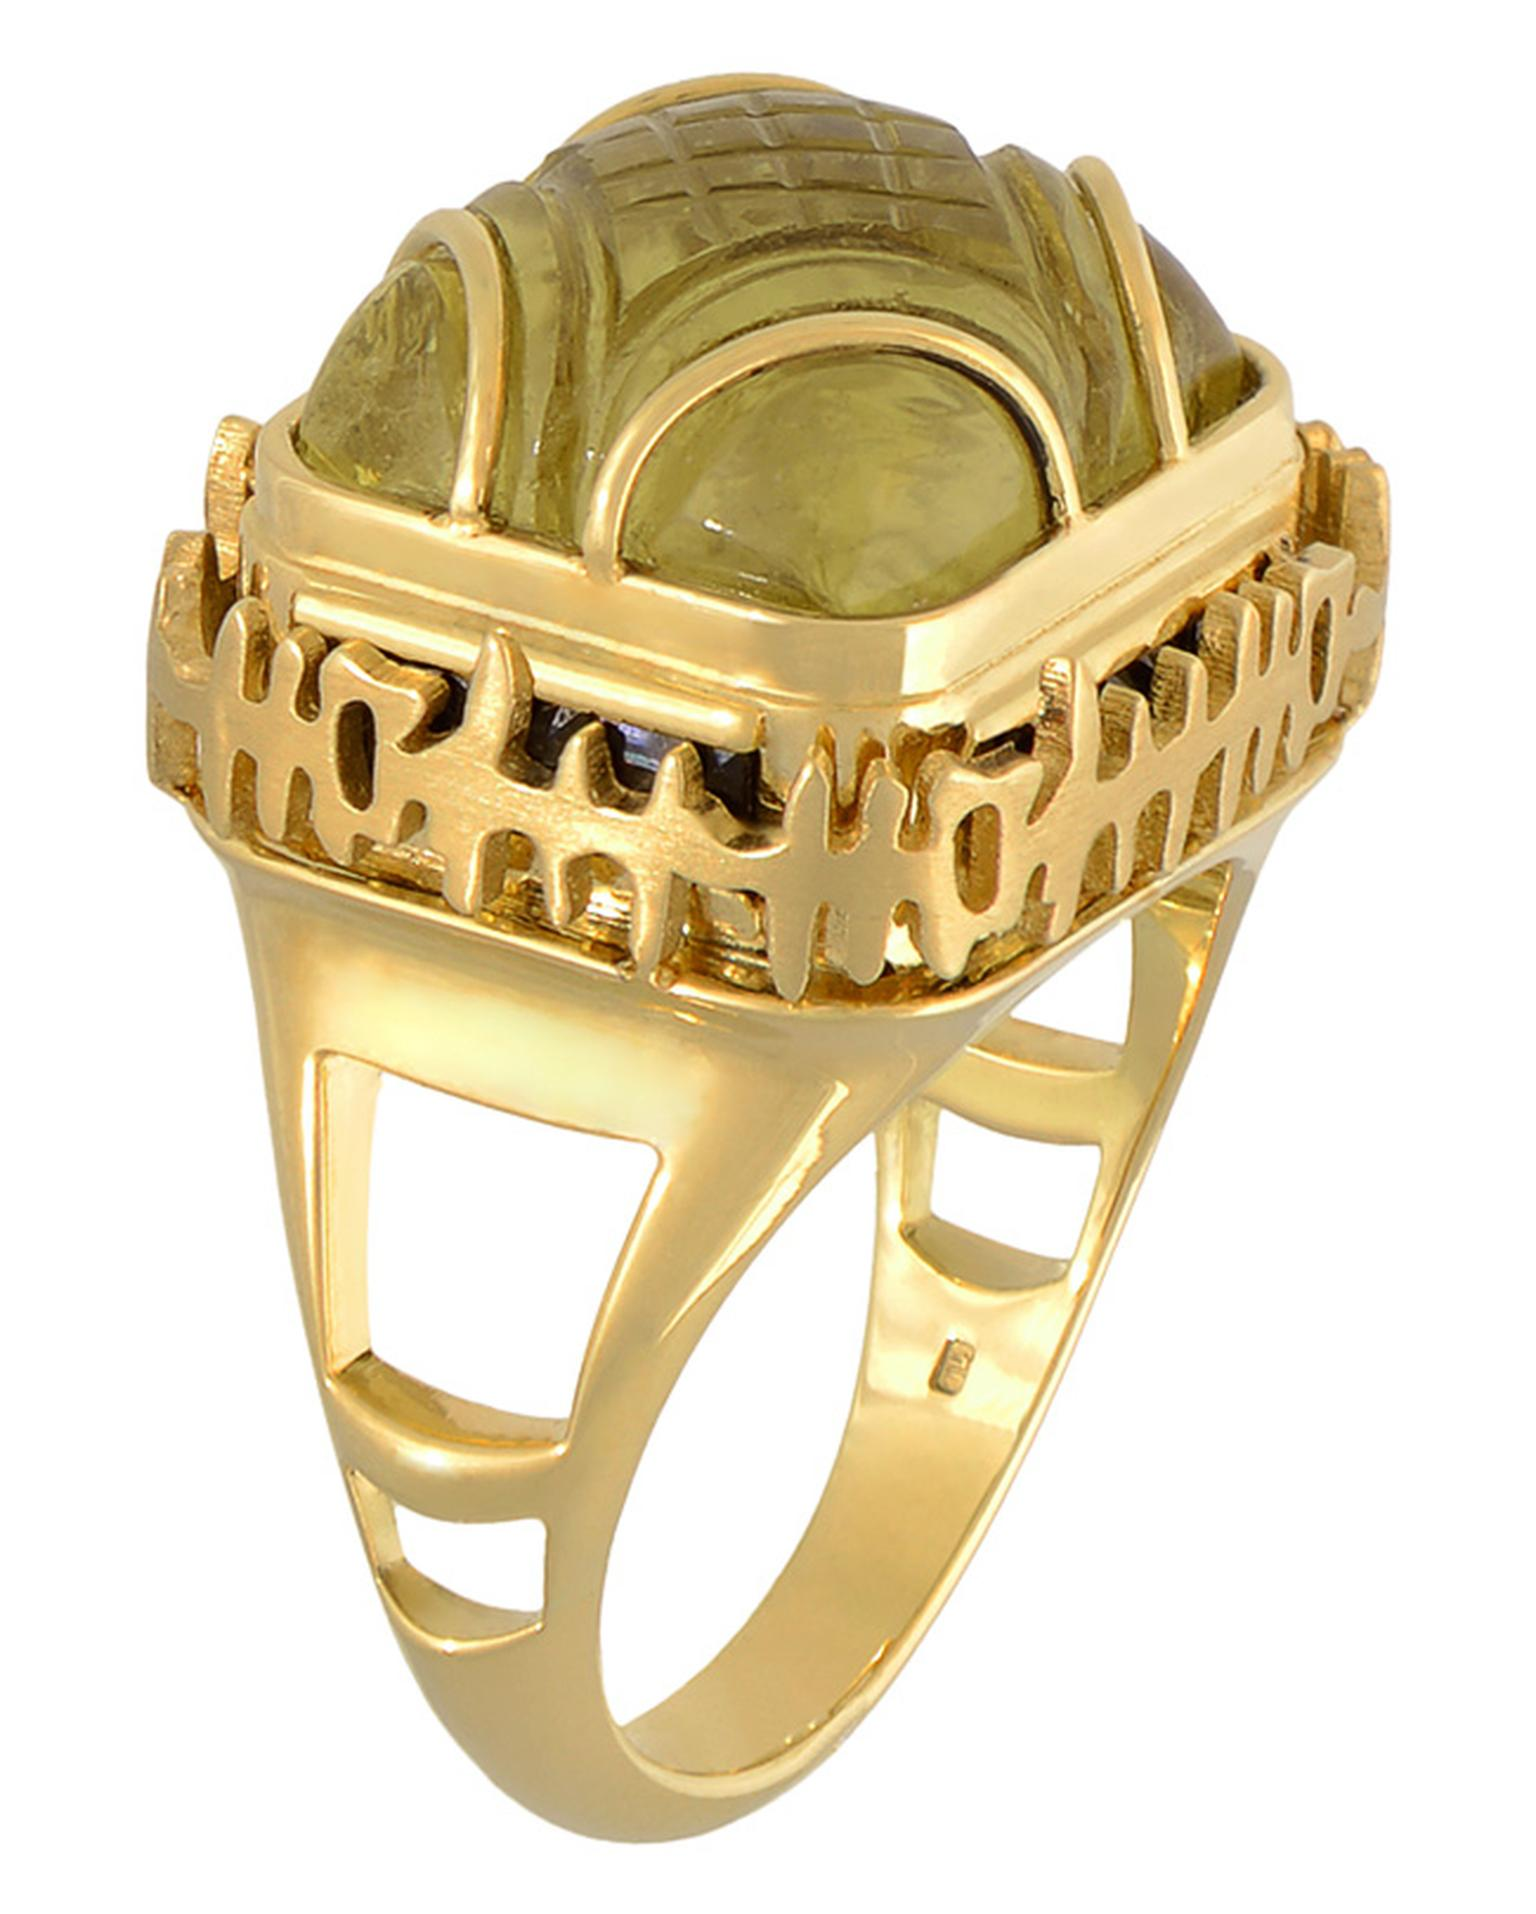 Tessa_Packard_Gold_Calligraphy_Ring_20140117_Main